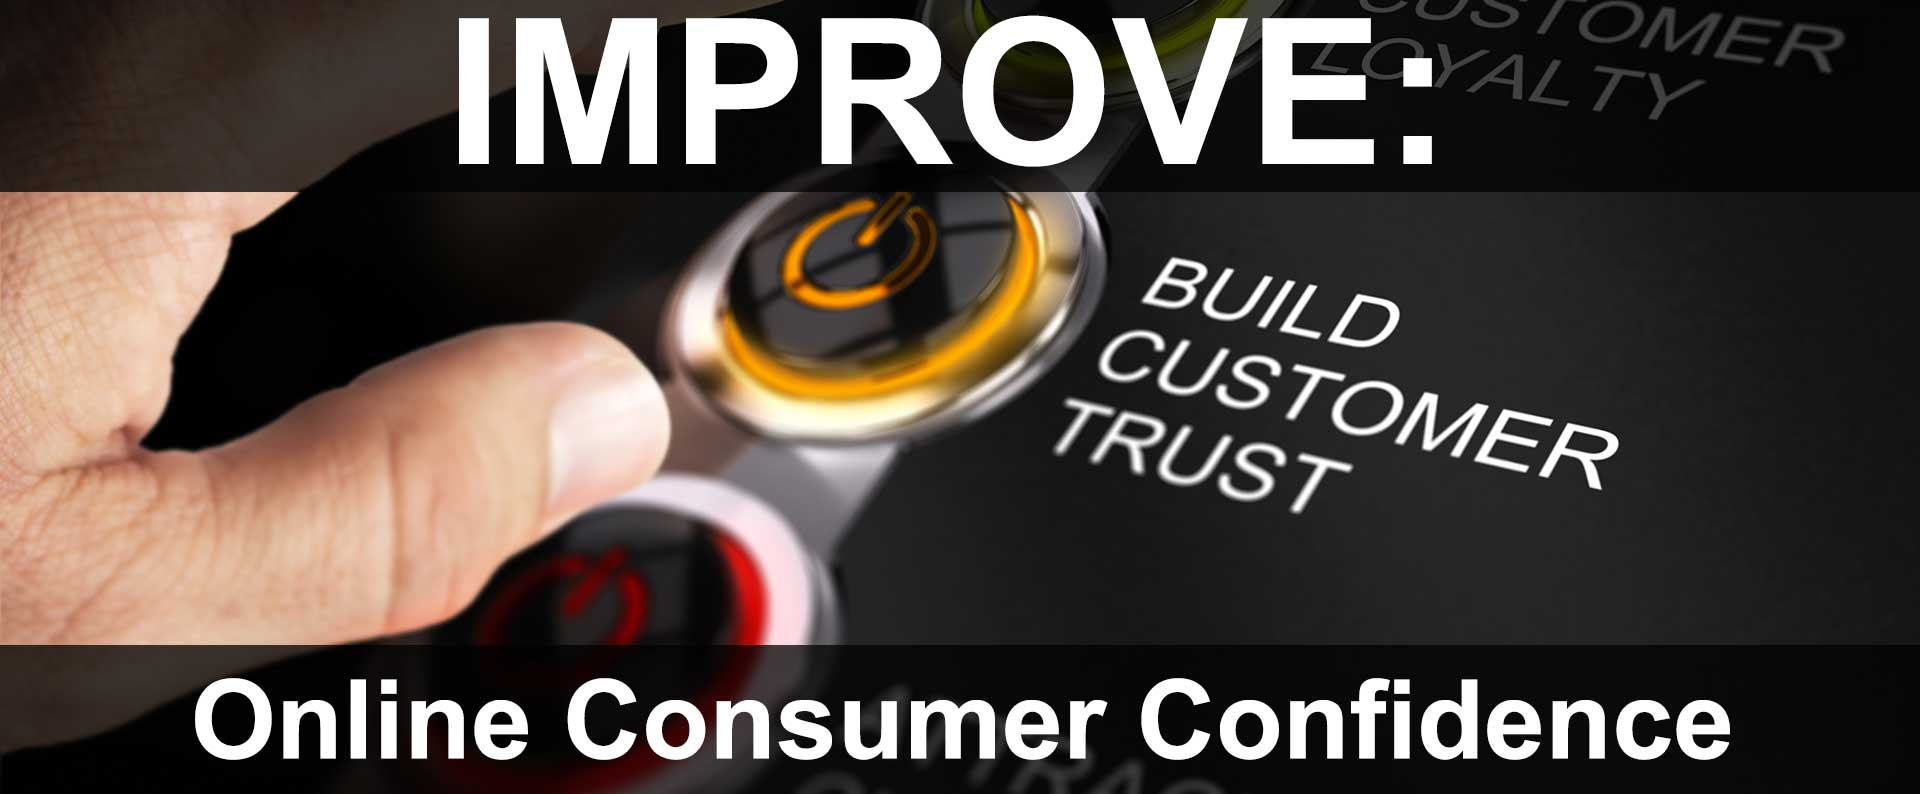 Improving Online Consumer Confidence